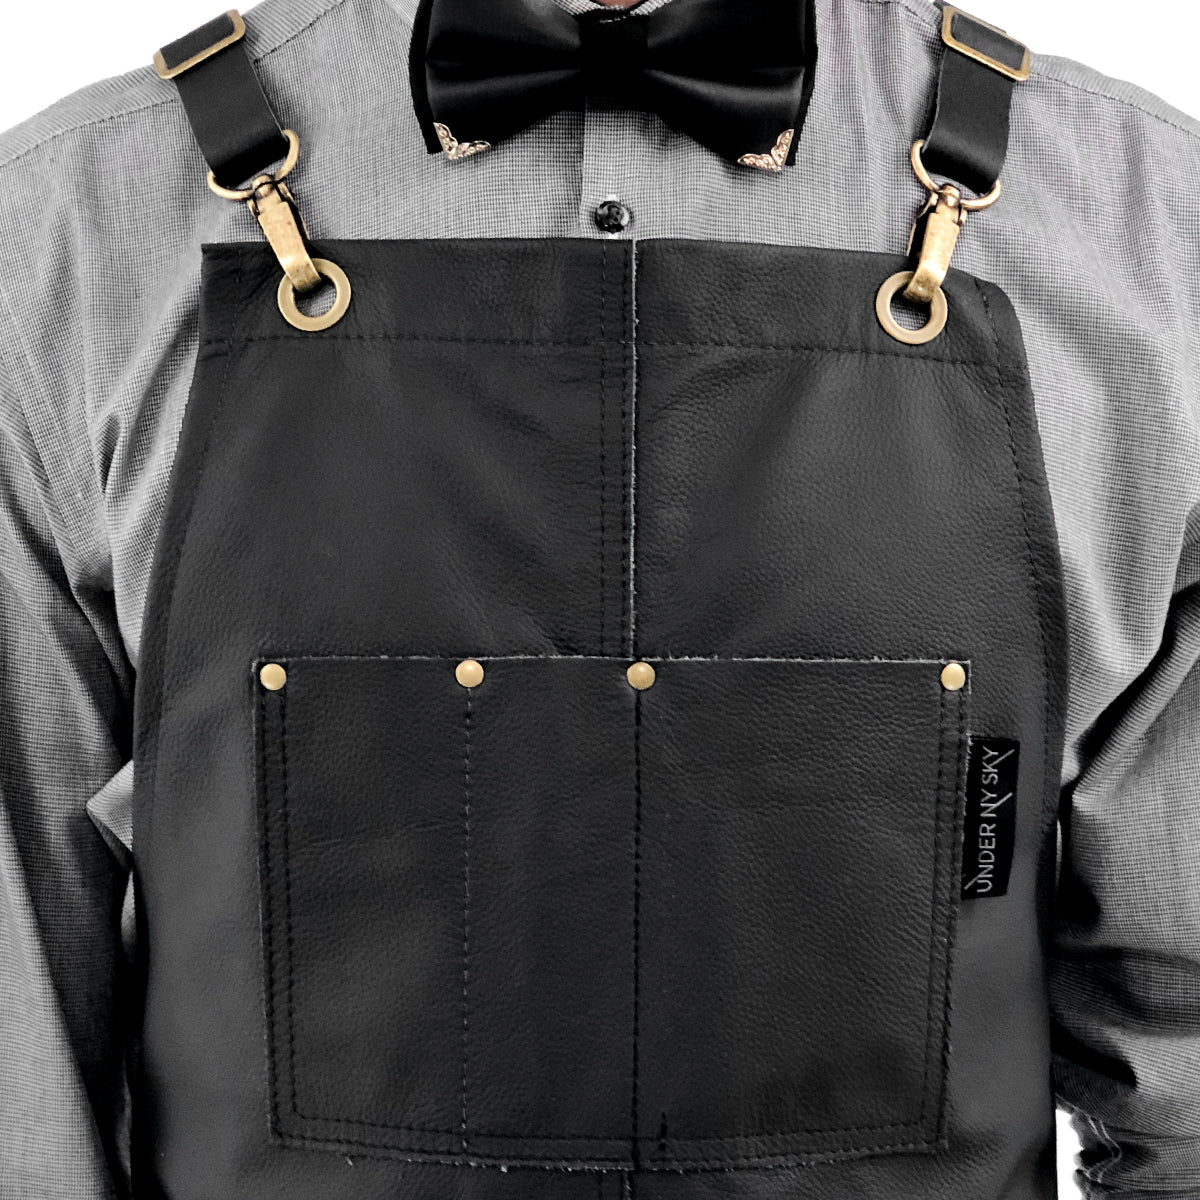 Under Ny Sky Full Leather Apron: Double Stitched and Riveted Pockets